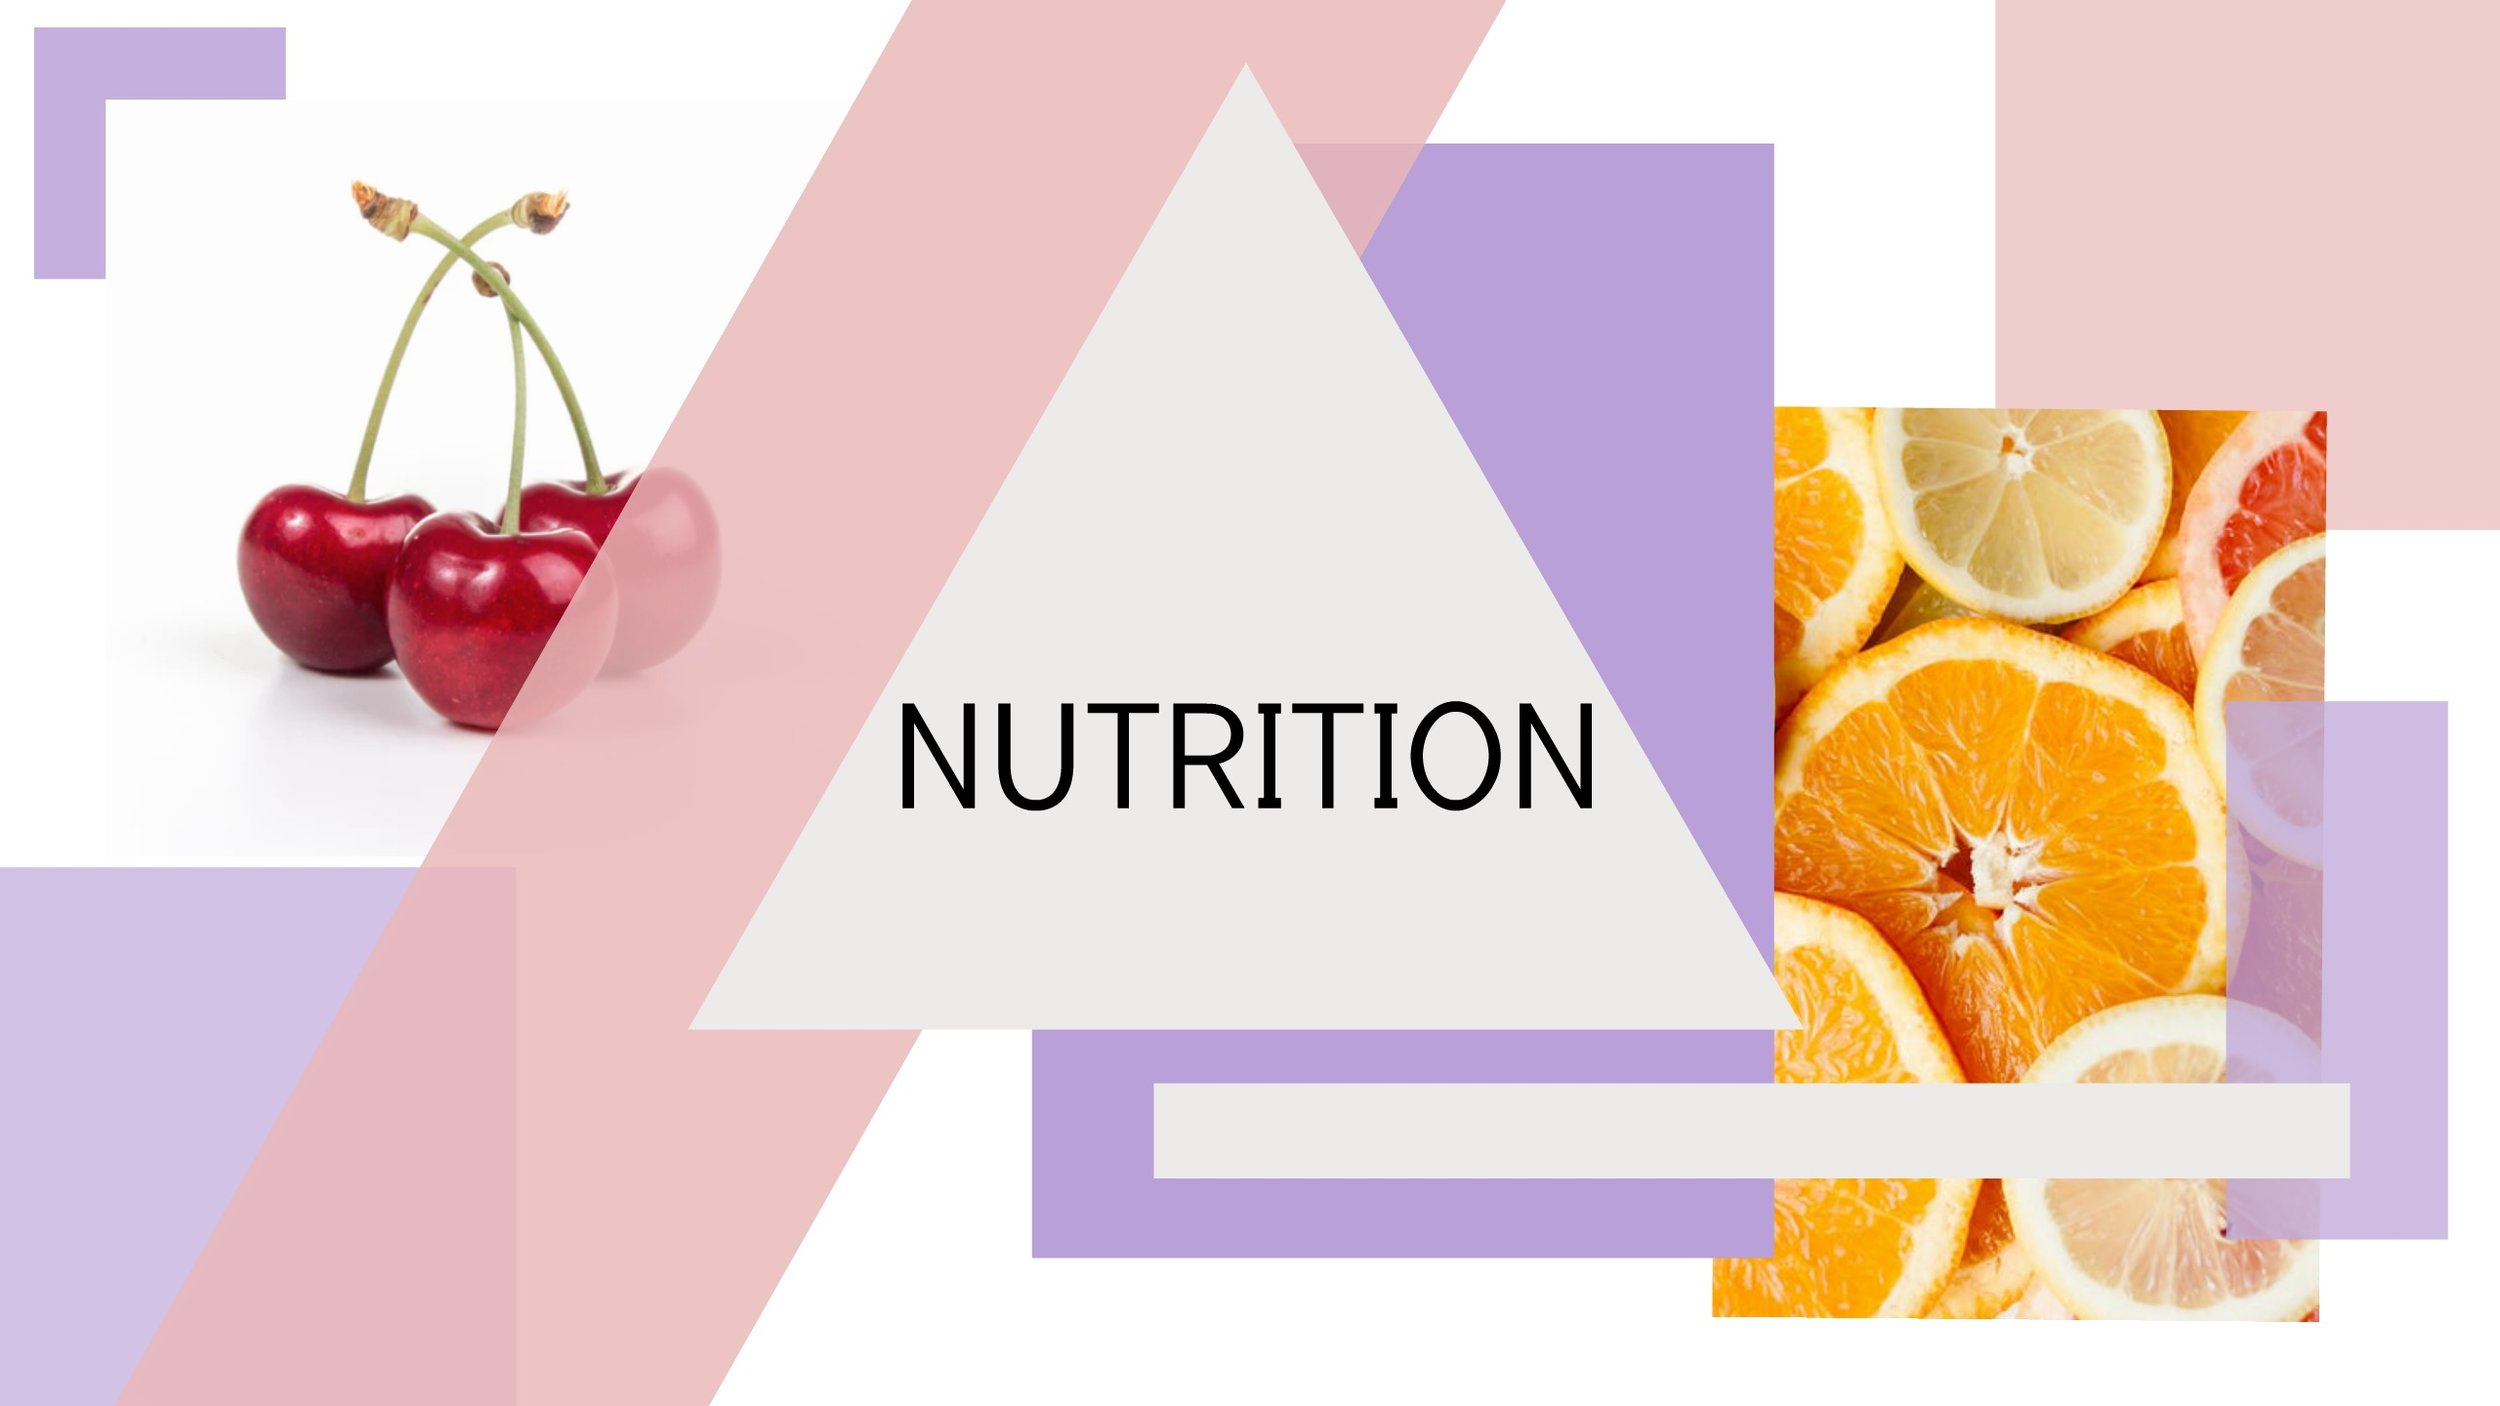 No more hunger or deprivation. - 83% of dieters end up heavier than before. Why? Because every fad diet in the world is fundamentally flawed. Our nutritional approach is deeply rooted in science and guaranteed to get you results that actually last.